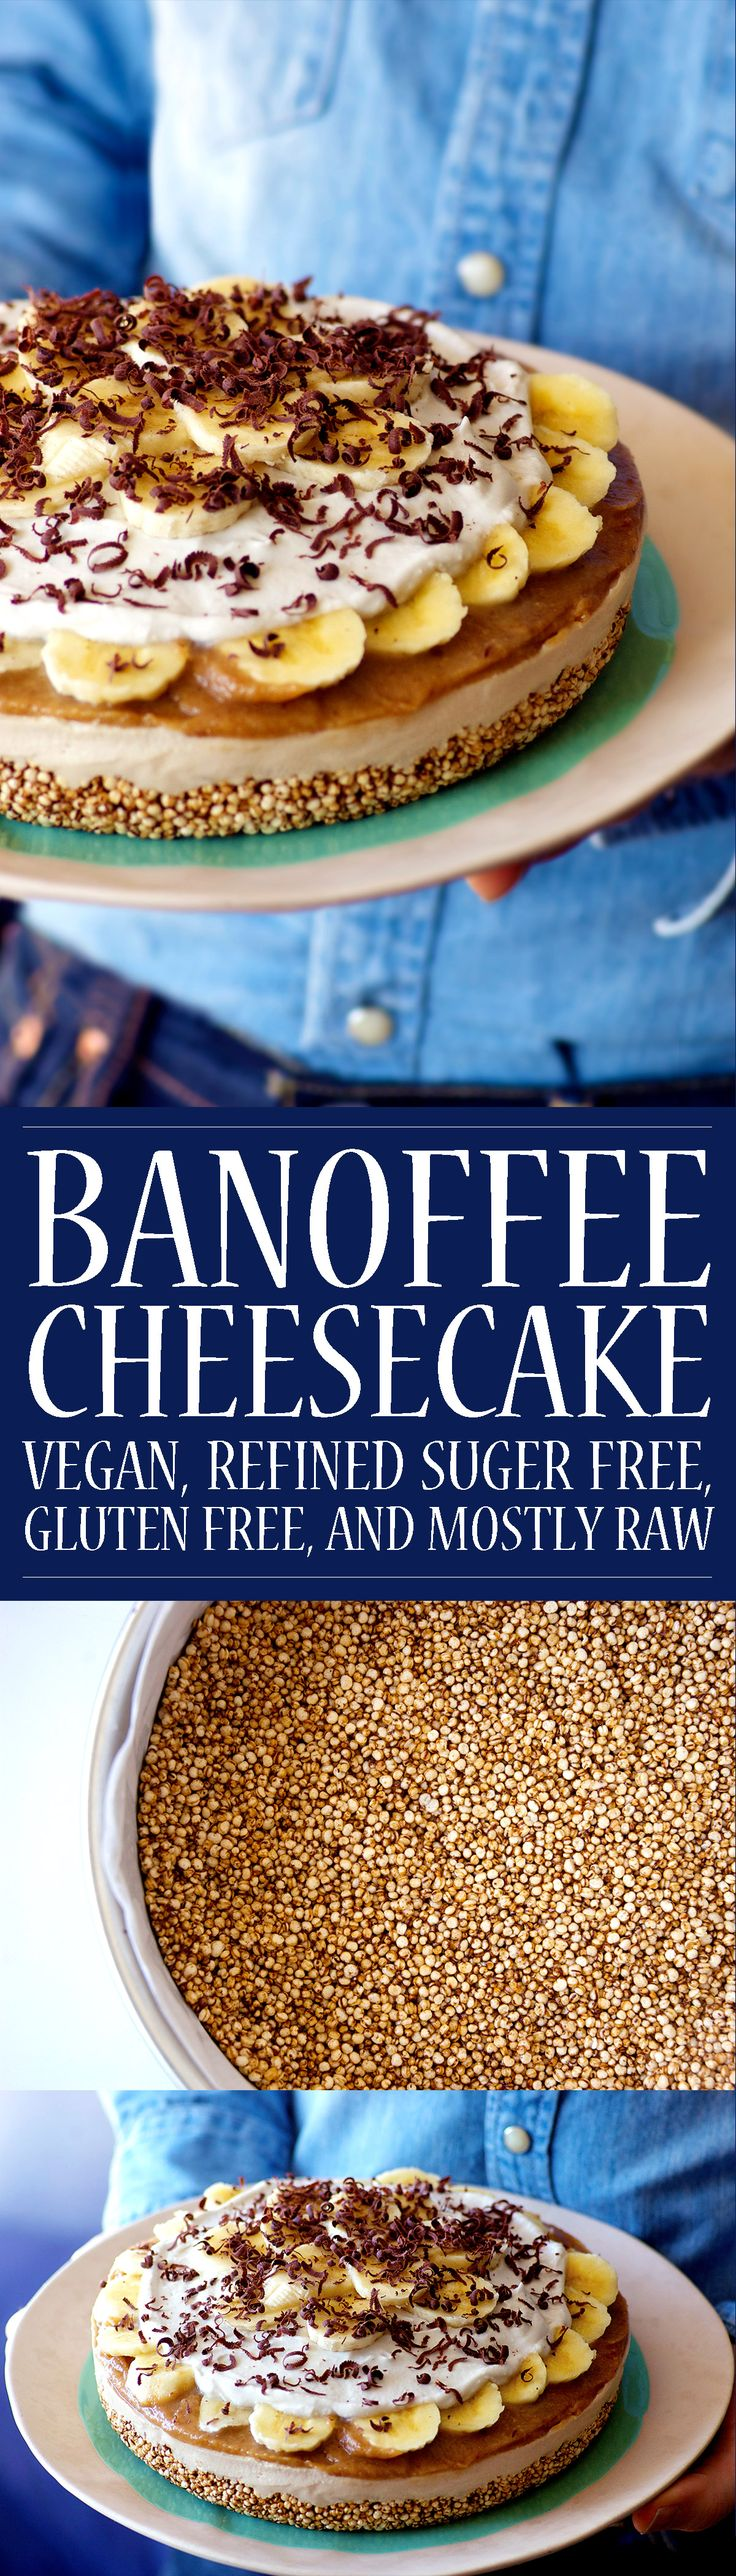 Banoffee Cheesecake! Vegan, mostly raw, gluten free, and refined sugar free! A delicious and nutritious holiday dessert! This easy recipe on Homespun Capers.